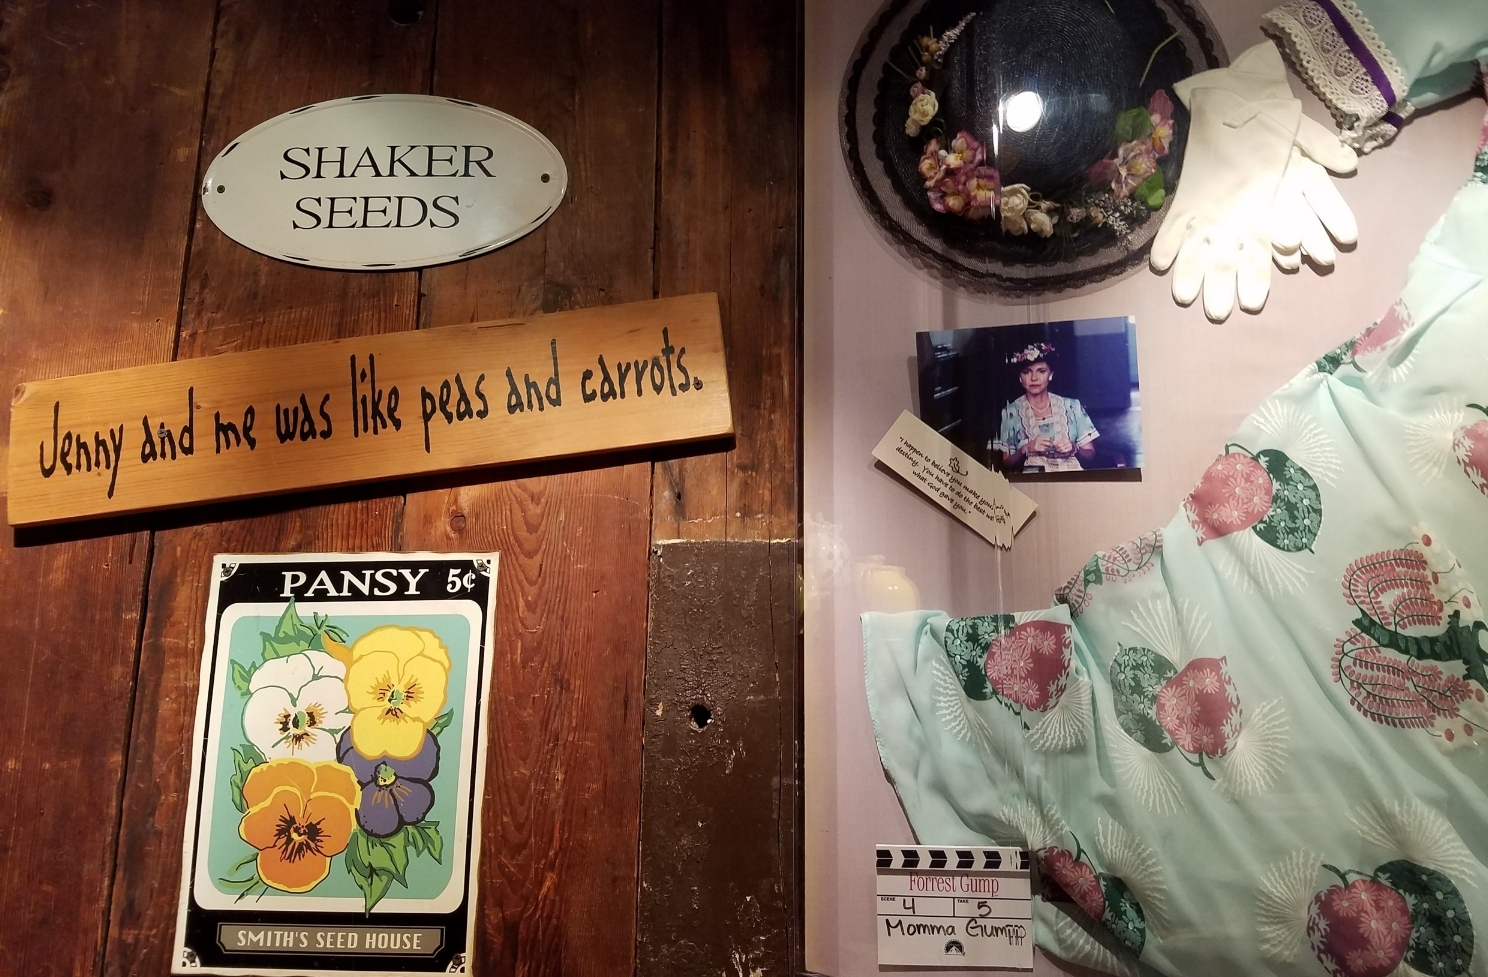 Example of some of the props and references to the Forrest Gump movie in Bubba Gump Shrimp Co.